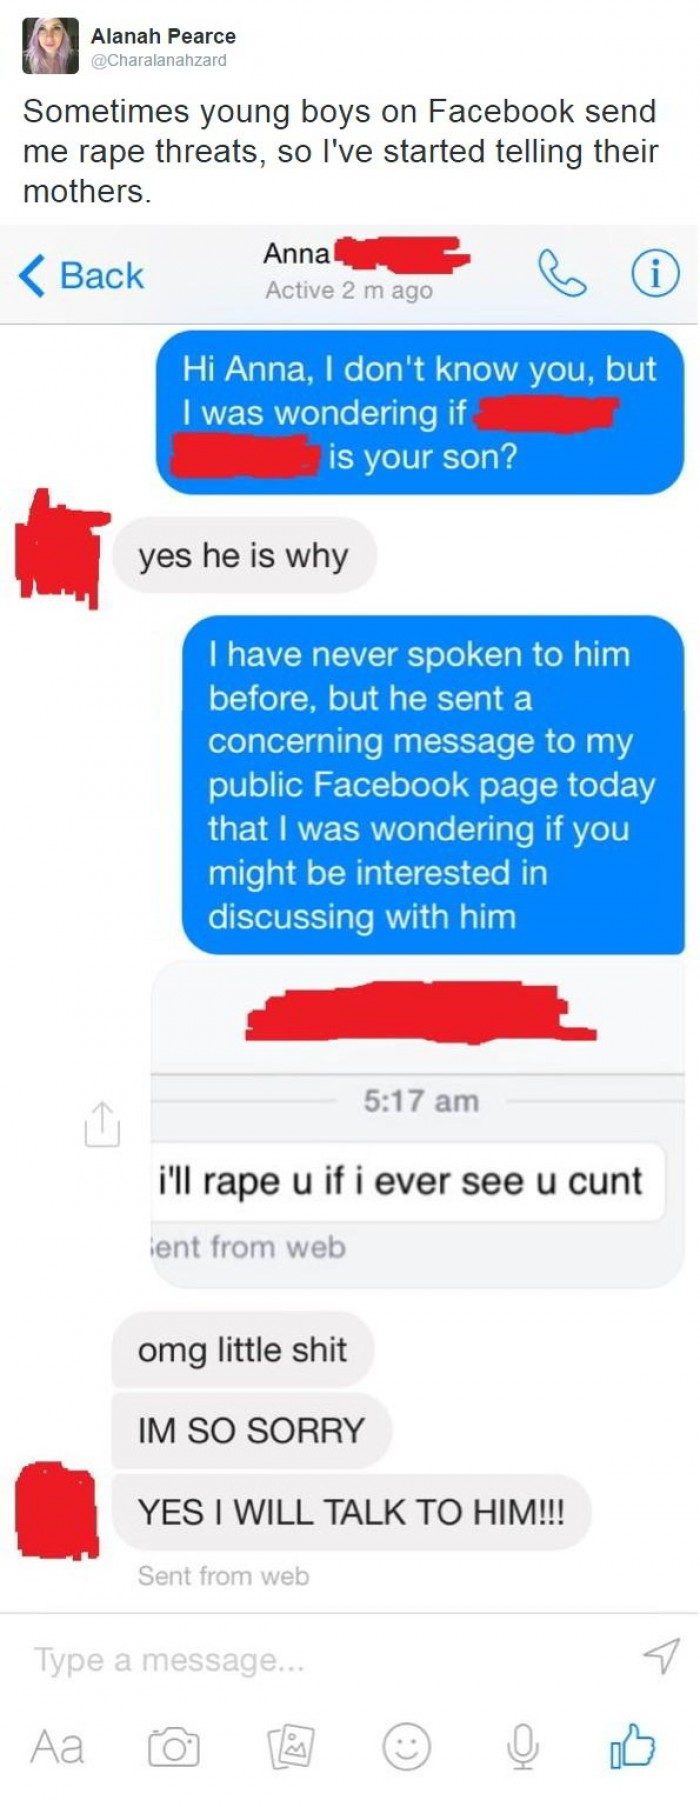 Sometimes young boys on Facebook send me rape threats, so I've started telling their mothers